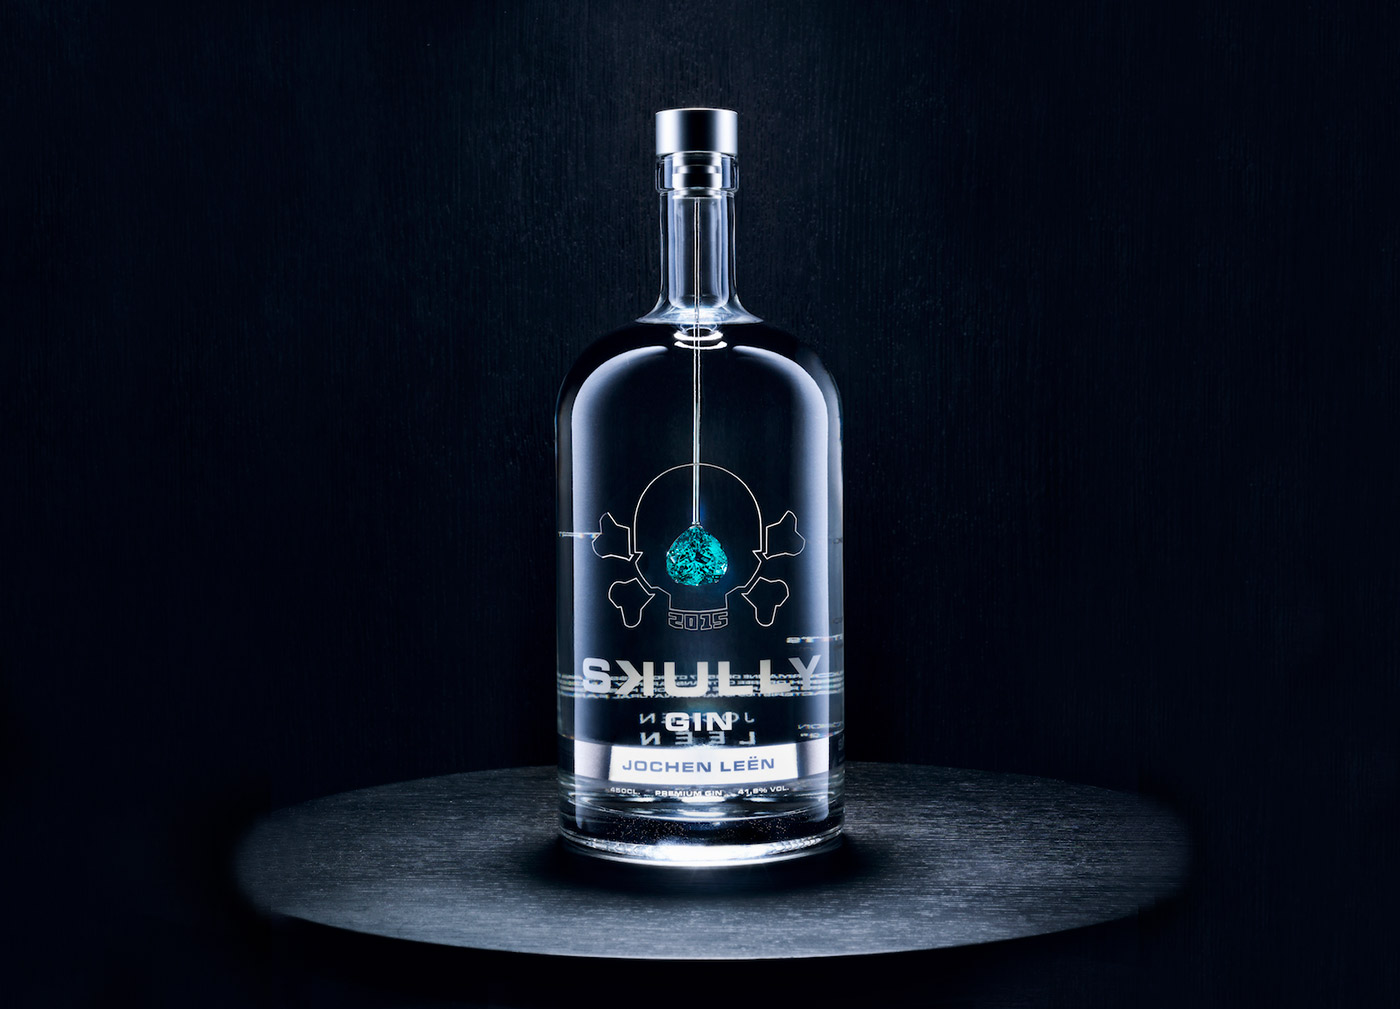 Jochen Leen x Skully Gin gift bottle with Paraiba Tourmaline